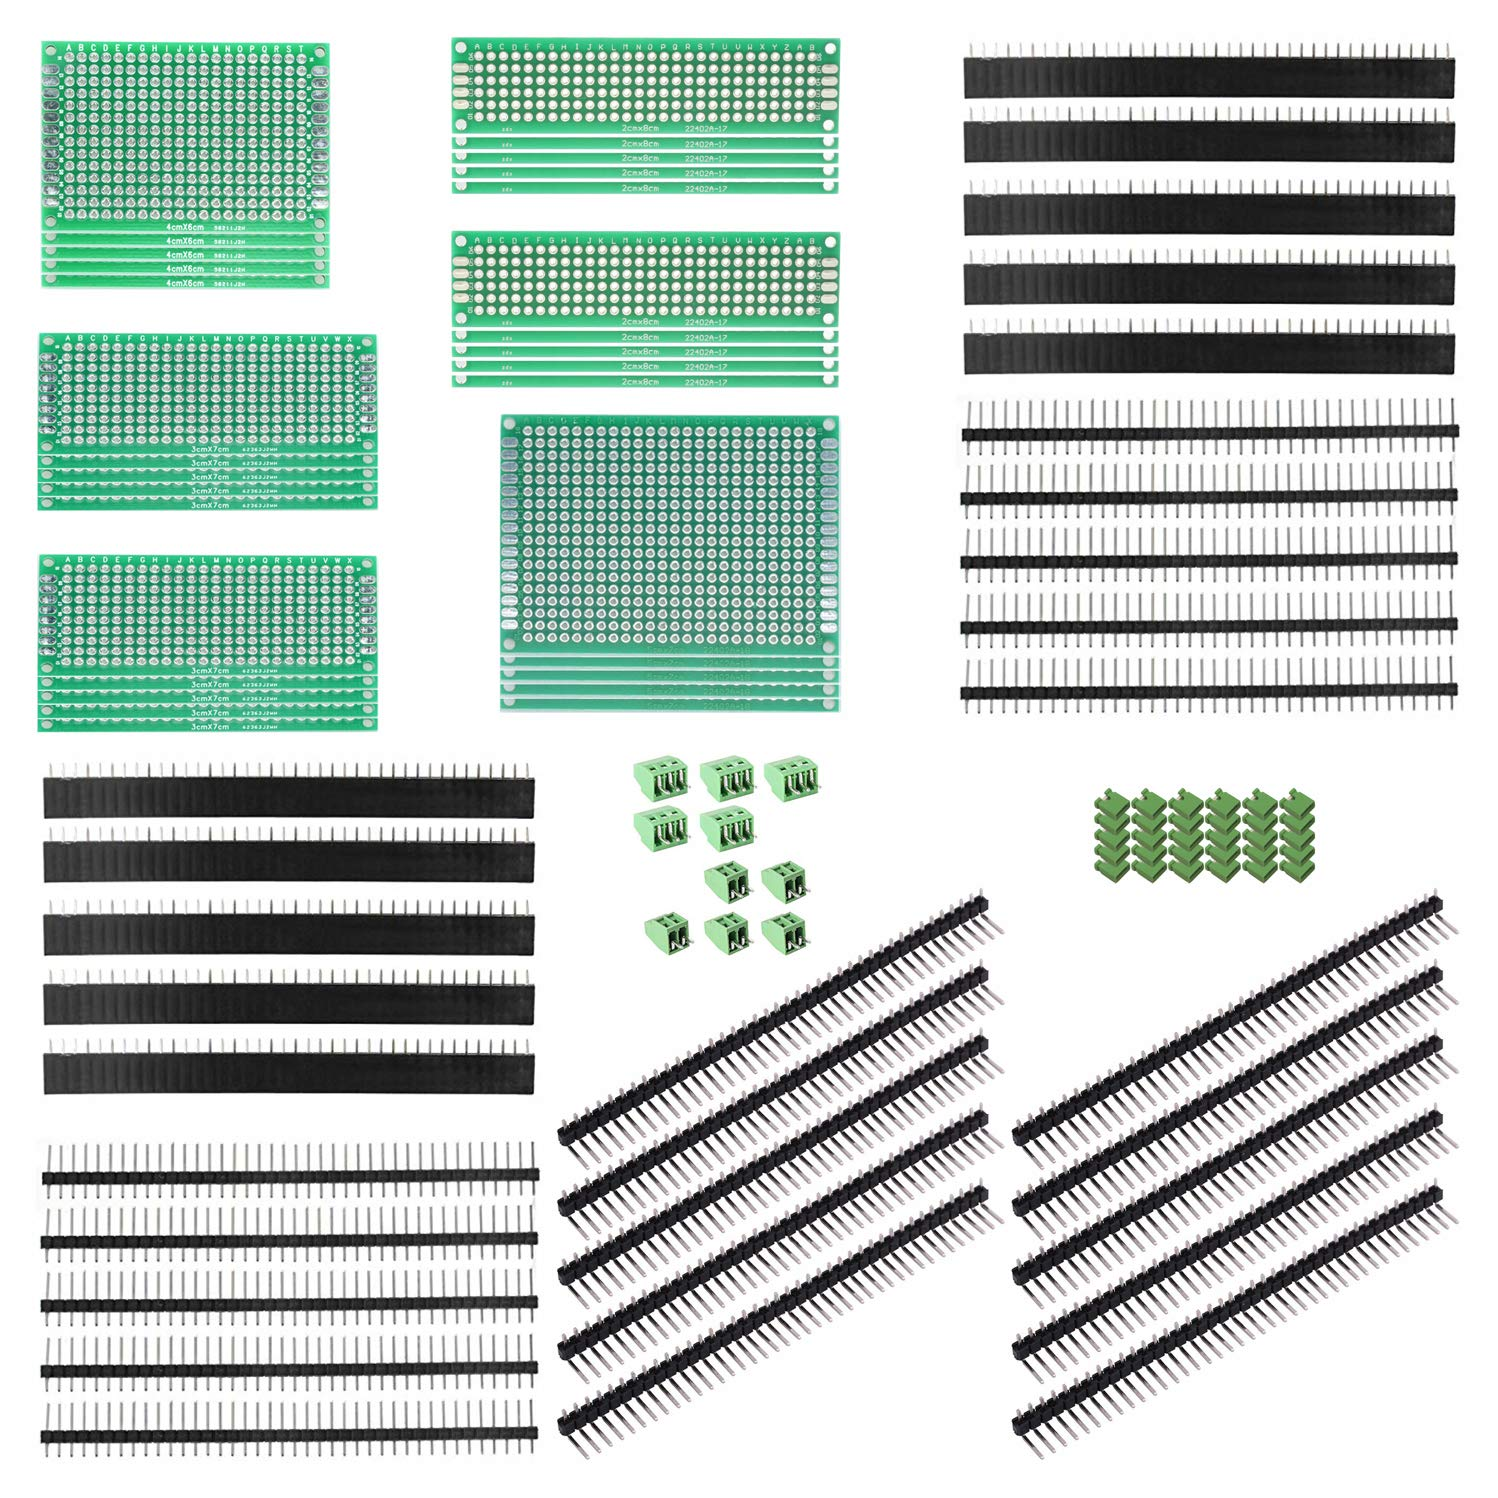 ALLDREI 100 Pcs Double Sided PCB Board Prototype Kit for DIY Soldering Compatible with Arduino Kits